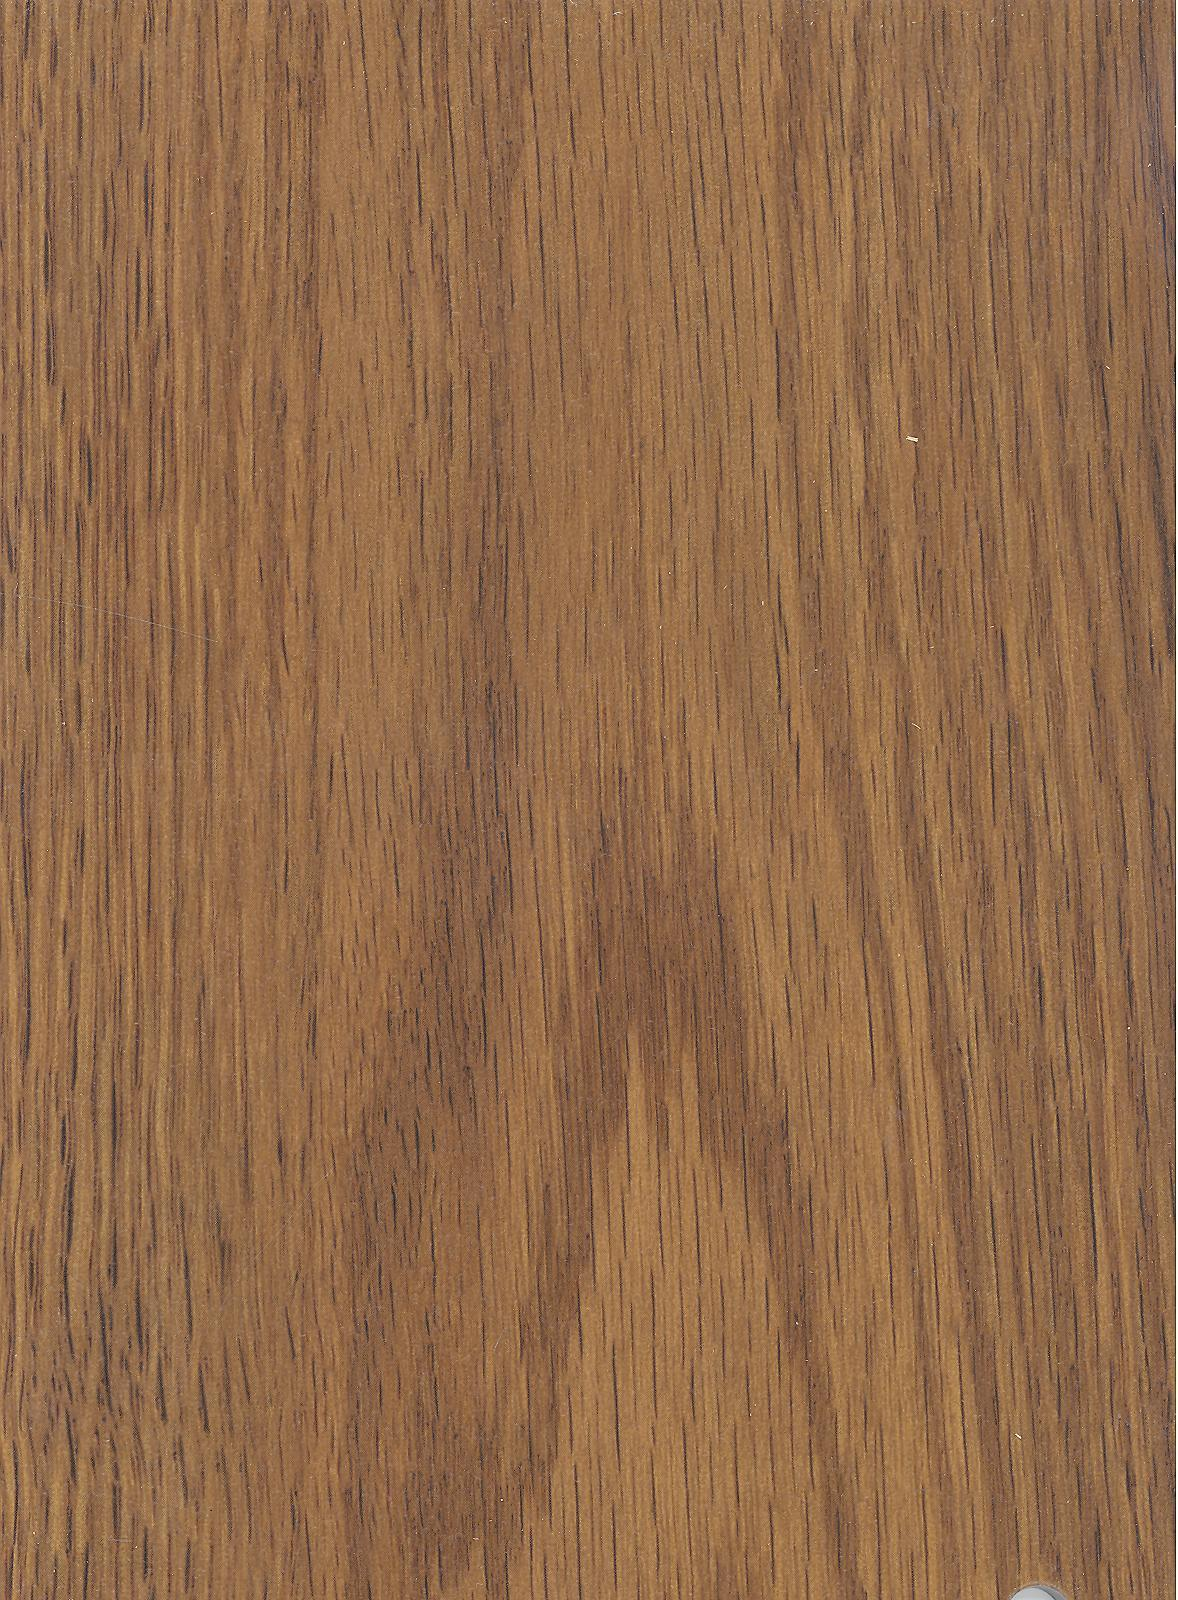 Congoleum lvt carefree dark oak 6 x 36 luxury vinyl for Mohawk vinyl flooring